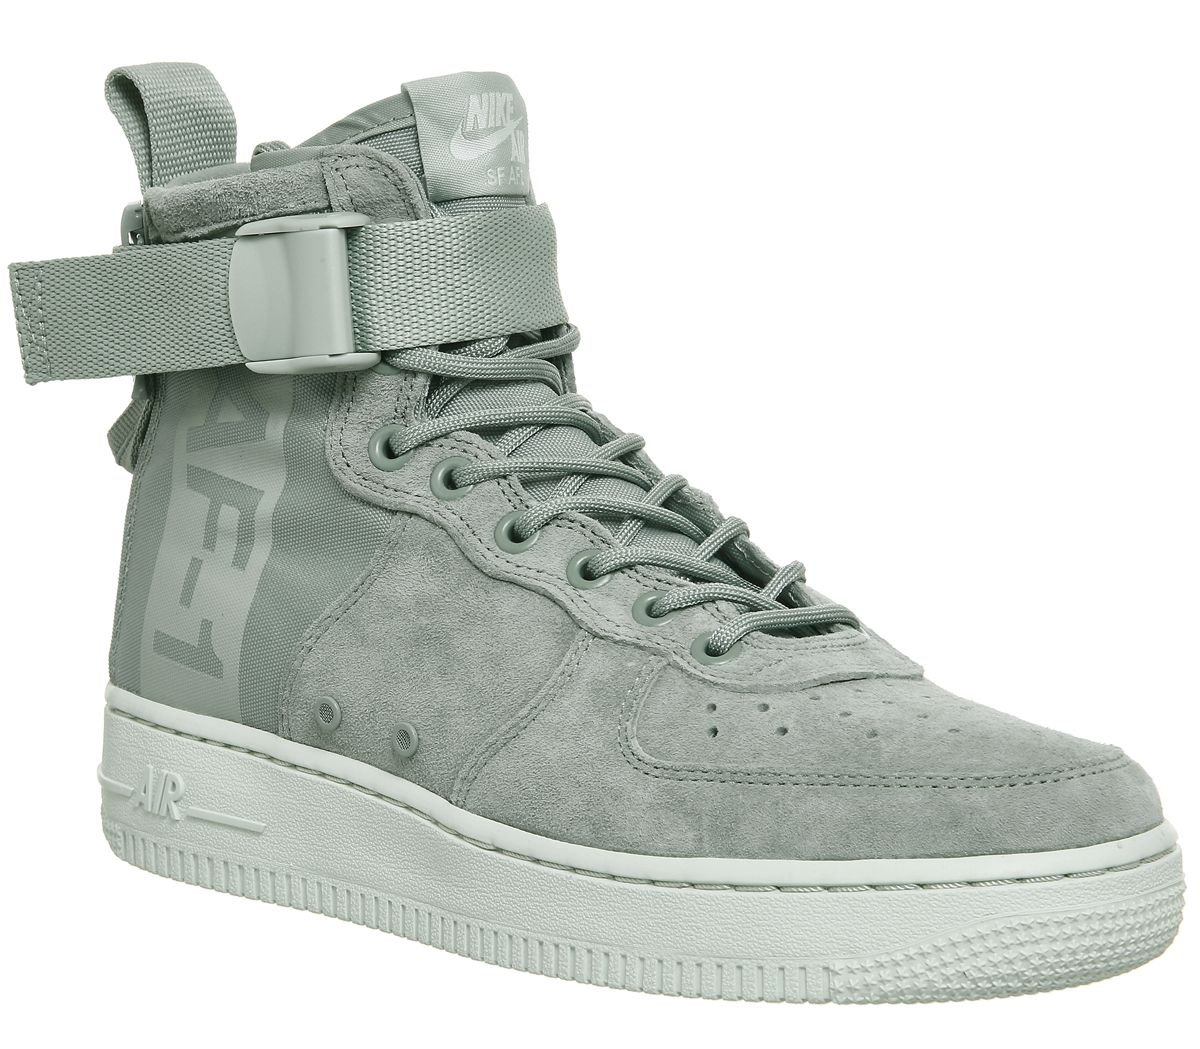 7accf2f9a021 Nike Sf Af1 Mid  17 Trainers Light Pumice Barely Grey F - Hers trainers